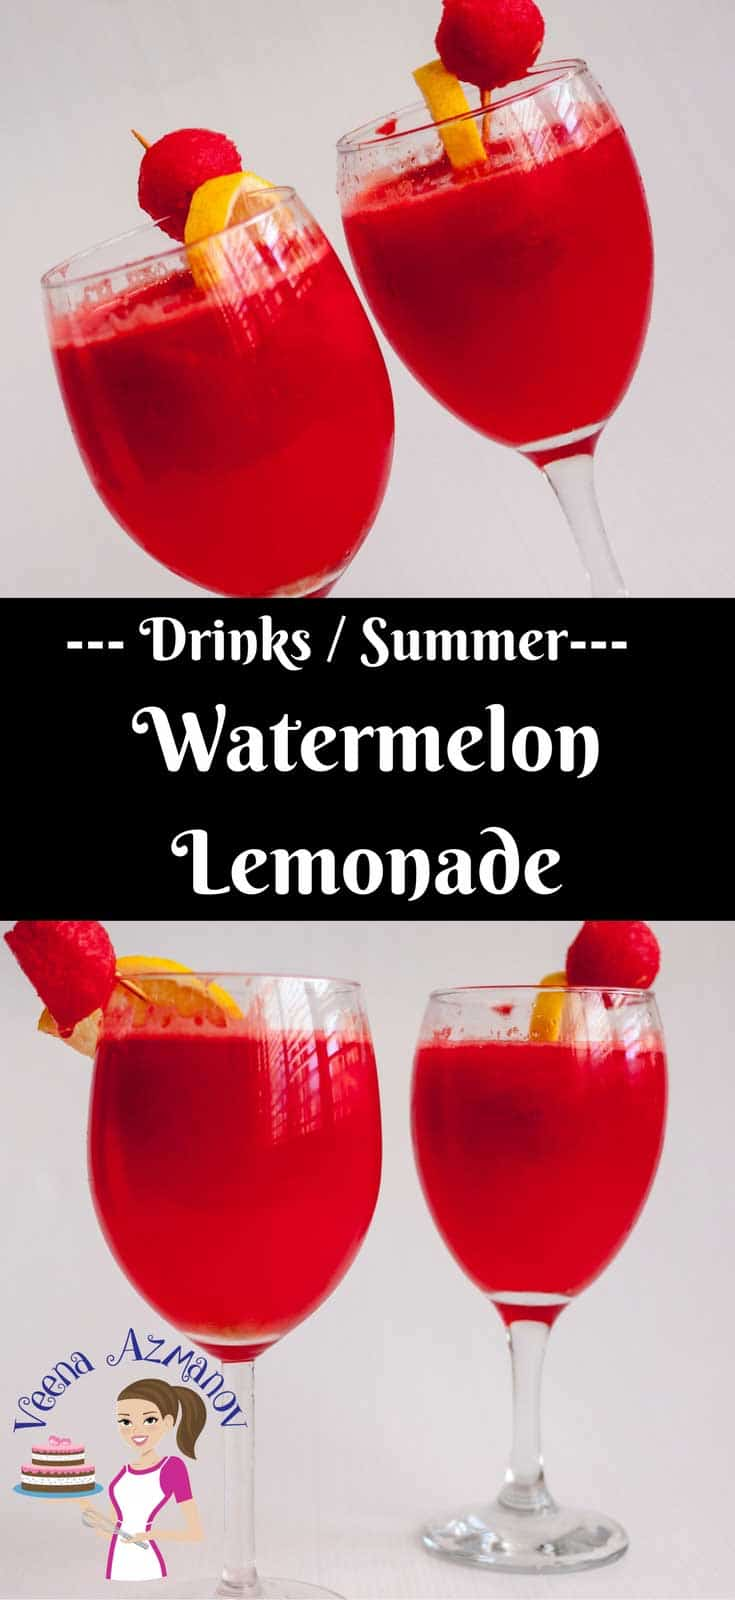 Weather you looking to add more freshness to your lemonade or more zing to your watermelon, this watermelon lemonade is a perfect summer treat. Sweet, light and refreshing - it's like summer in a drink.